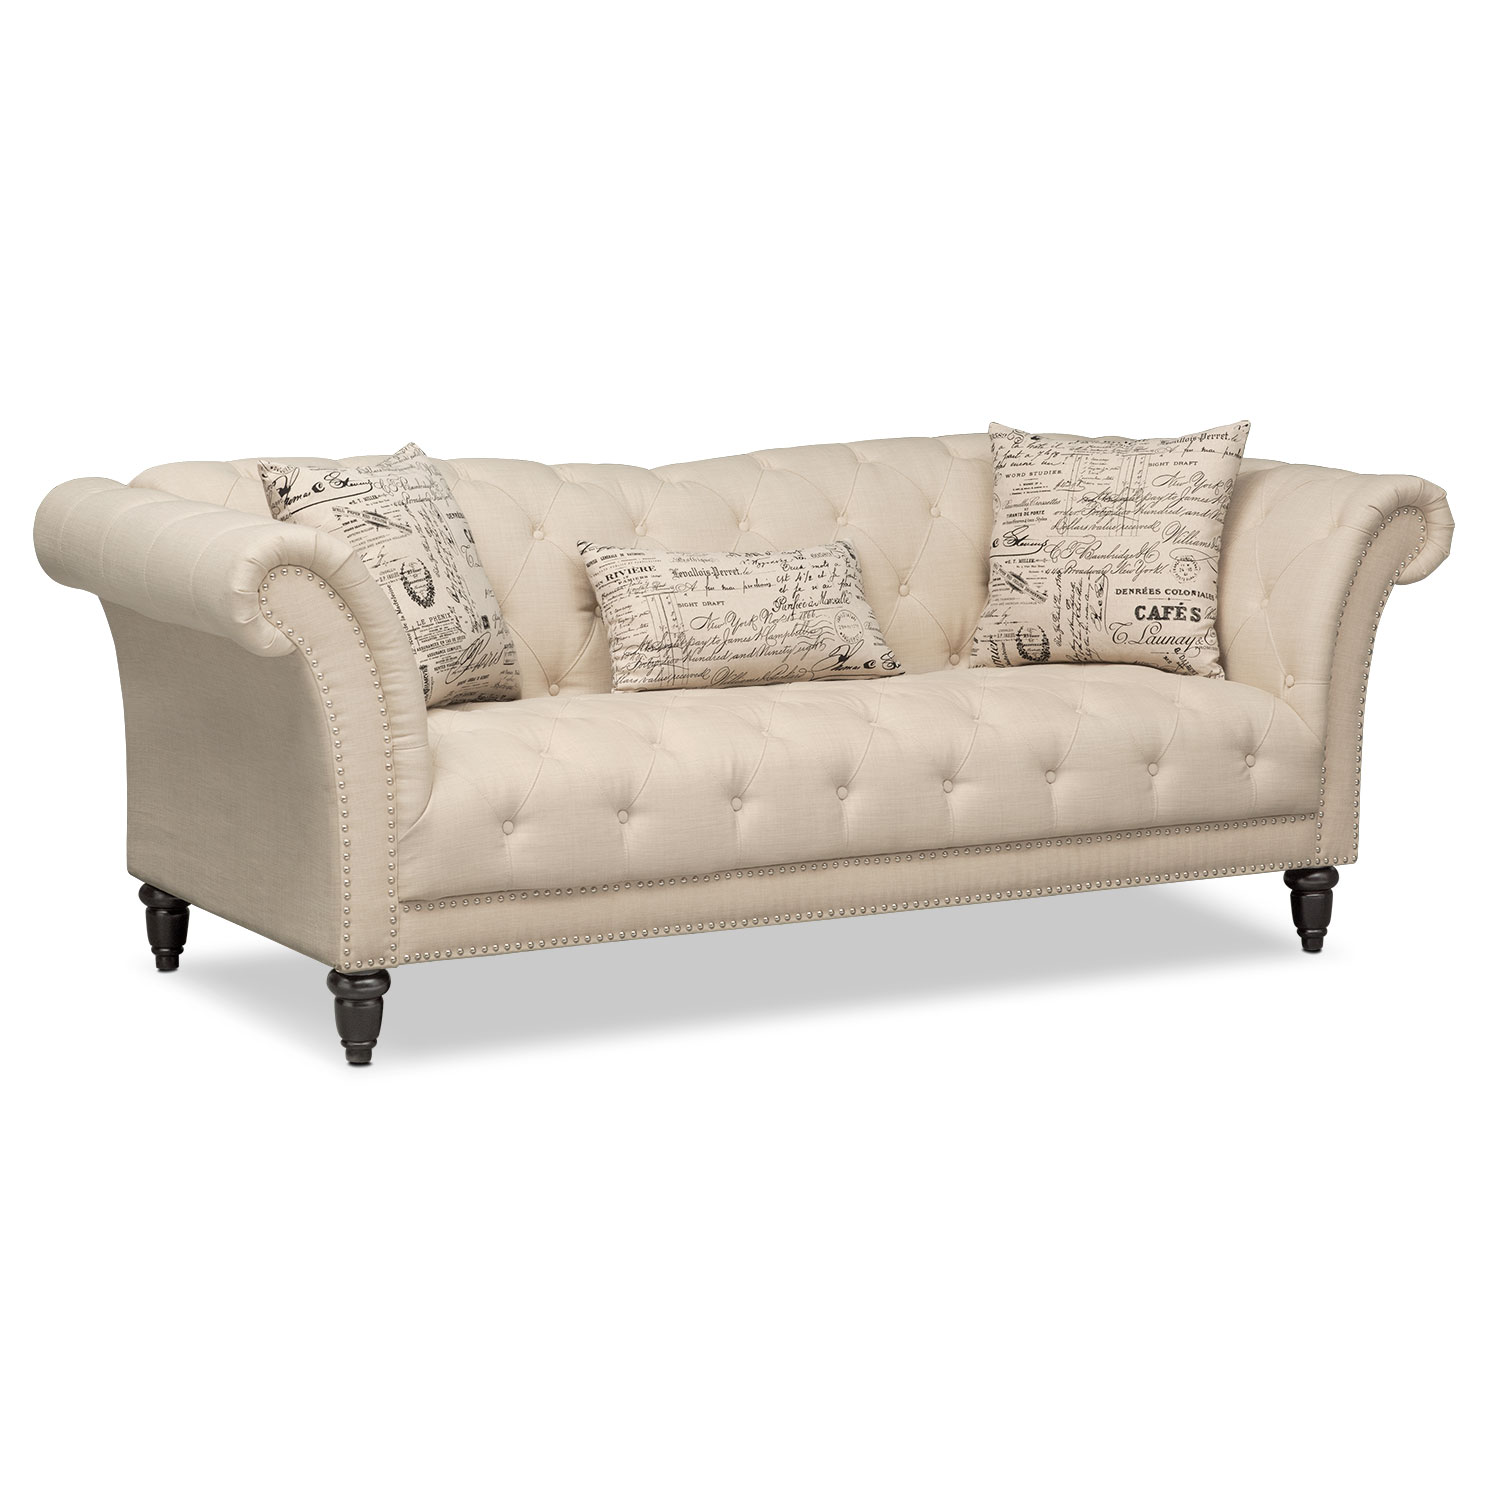 Marisol sofa beige value city furniture for Furniture sofas and couches